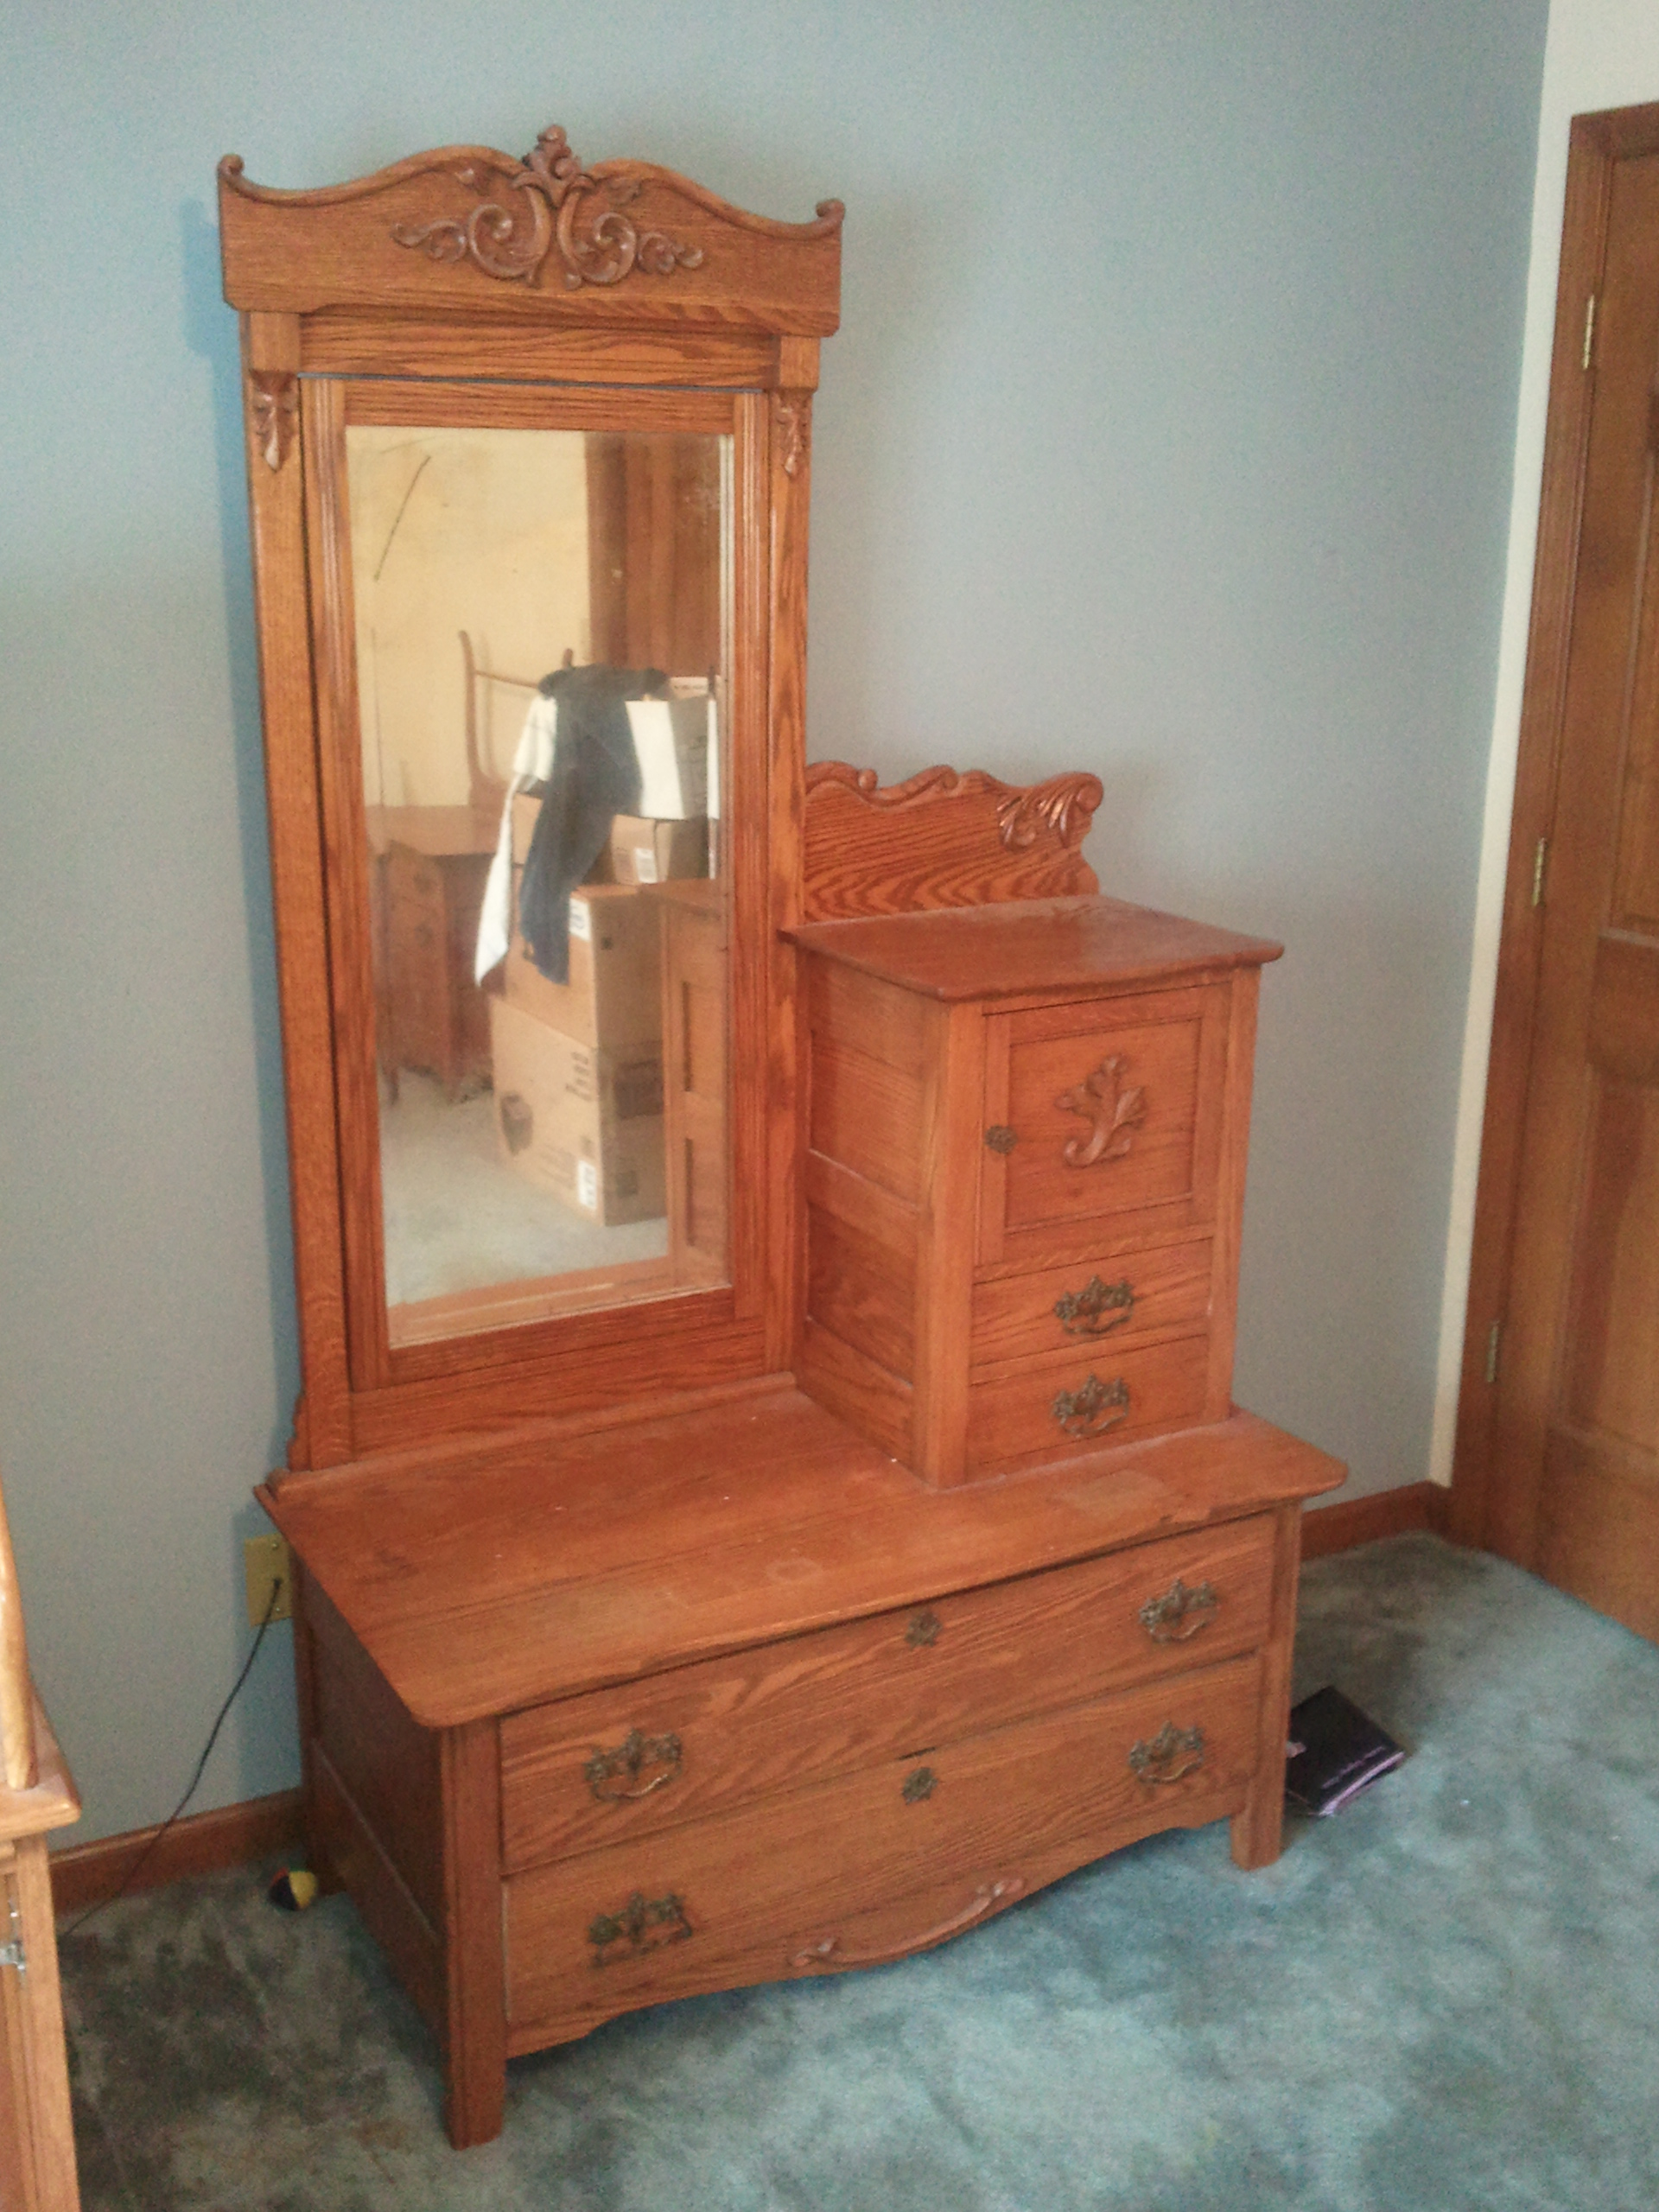 3 Piece Antique Bedroom Set For Sale